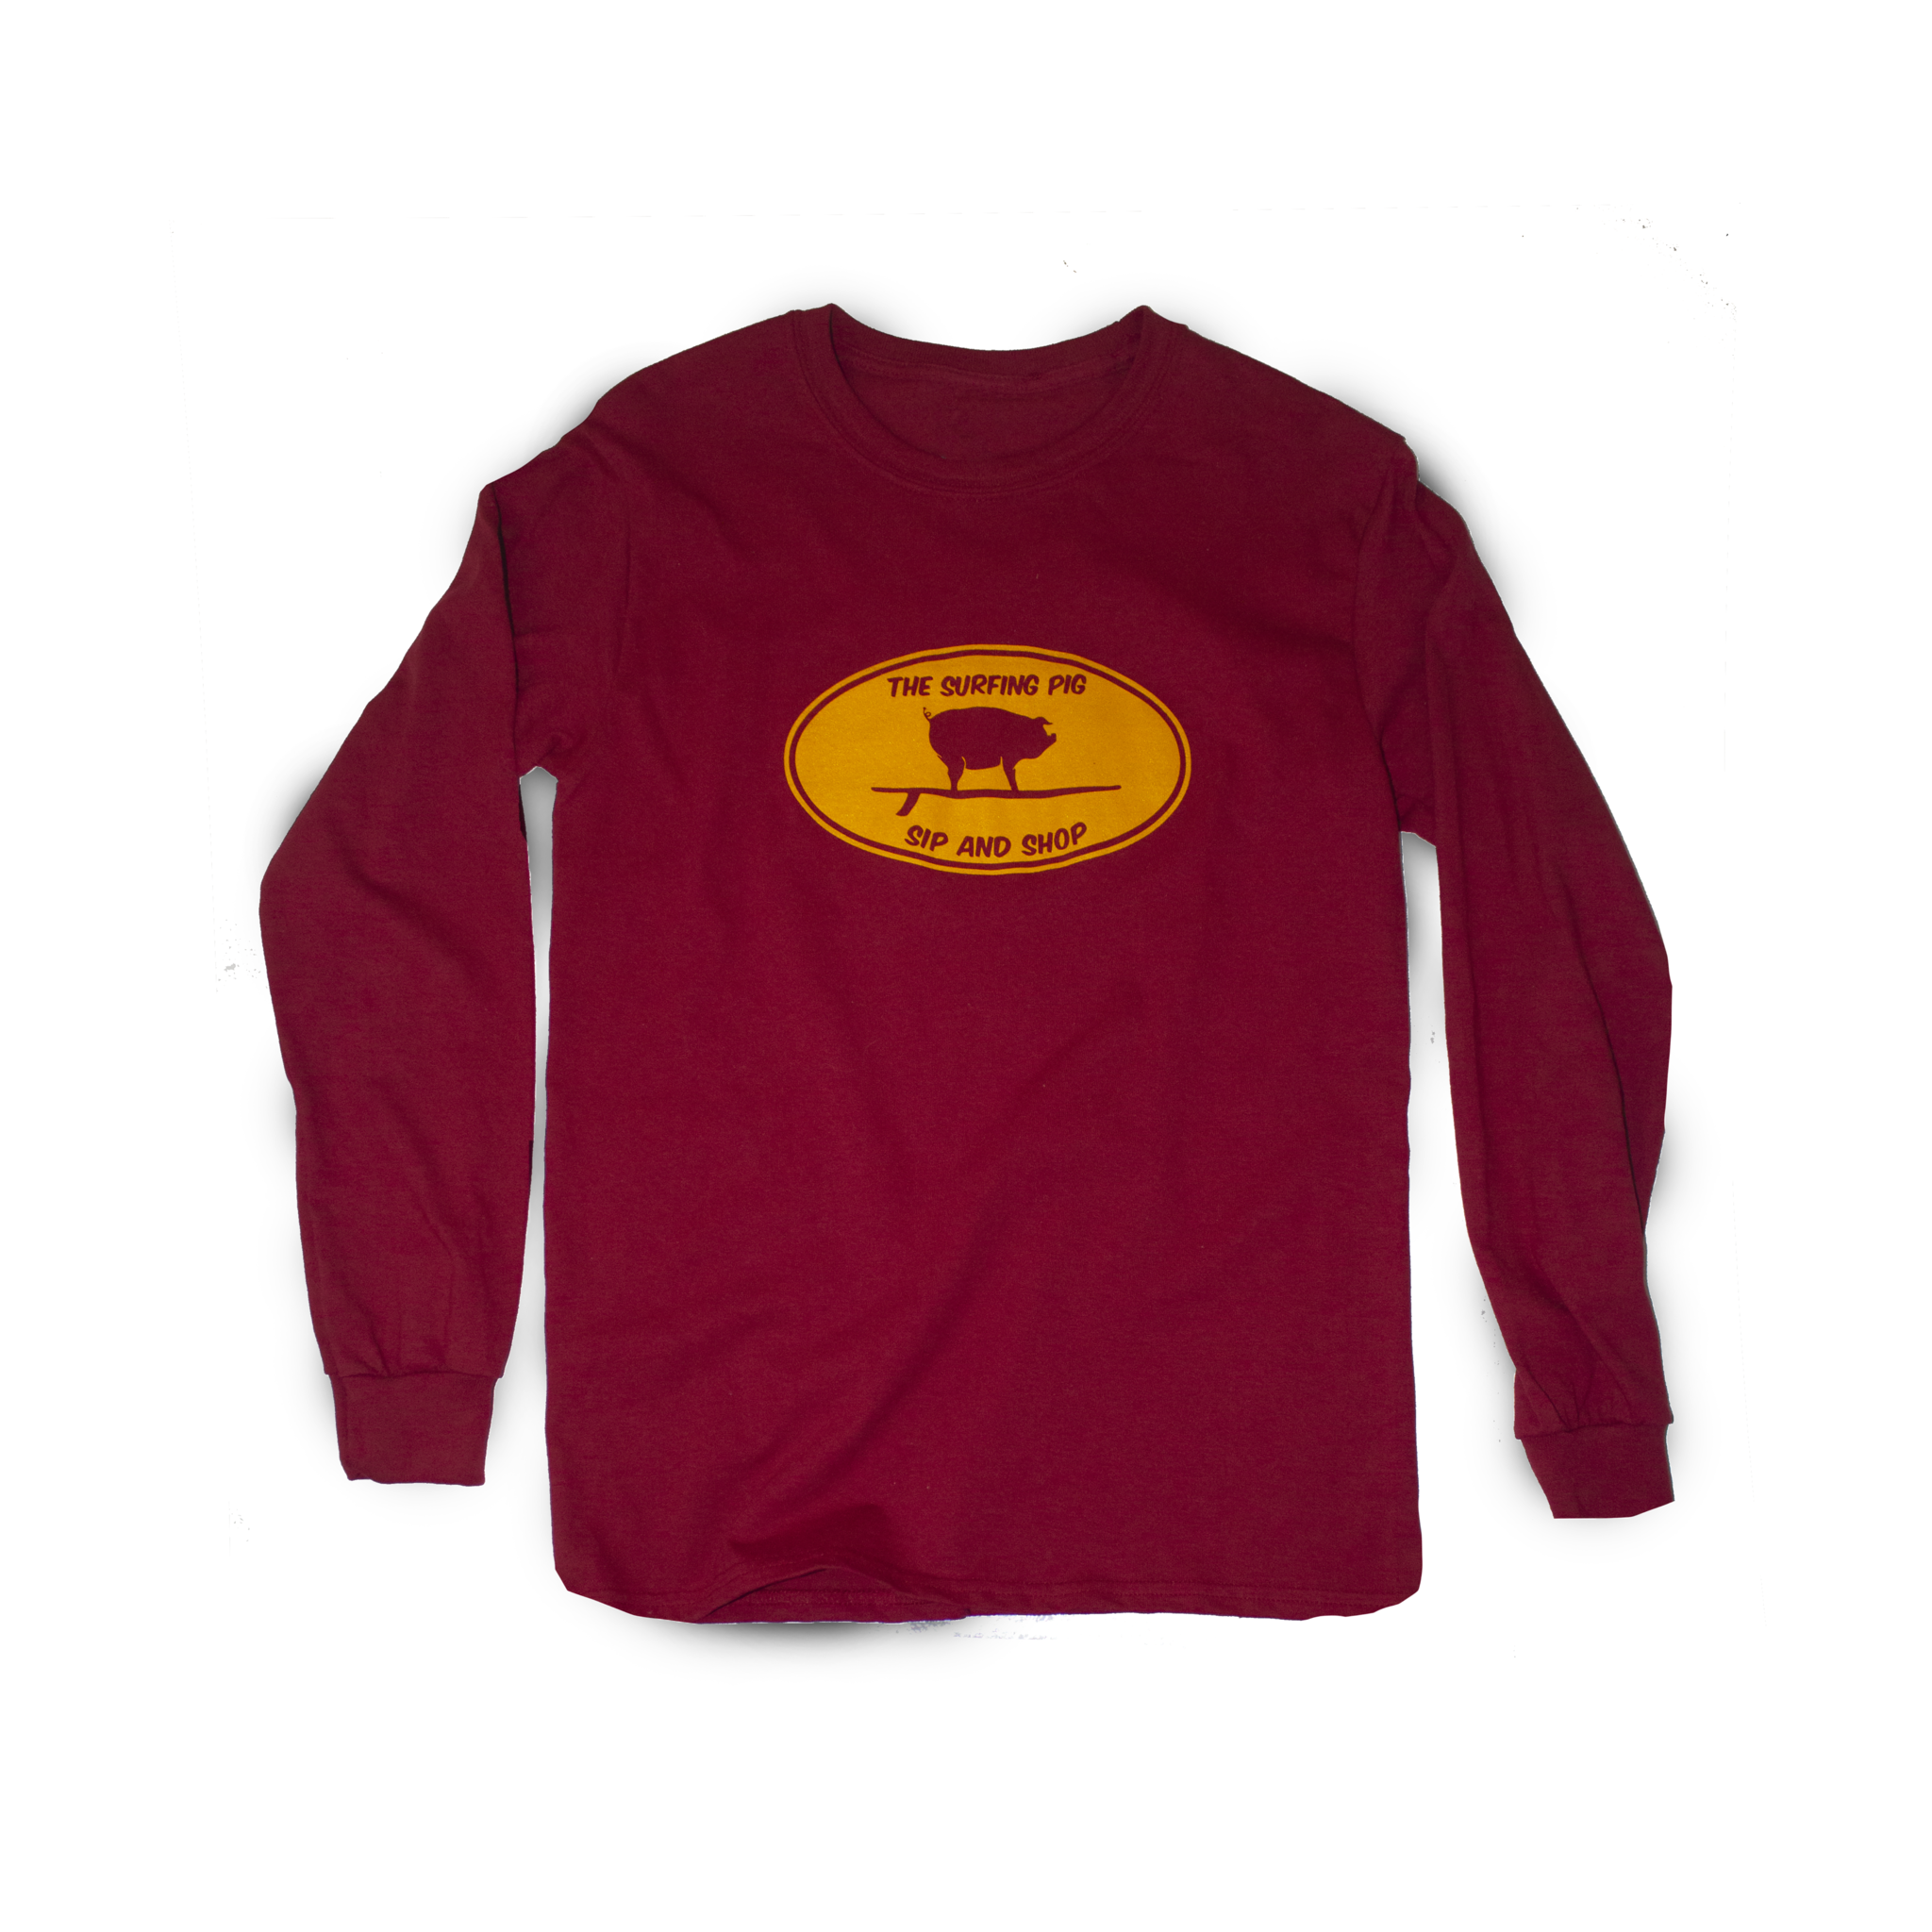 The Surfing Pig Sip and Shop Long Sleeve, Red-1